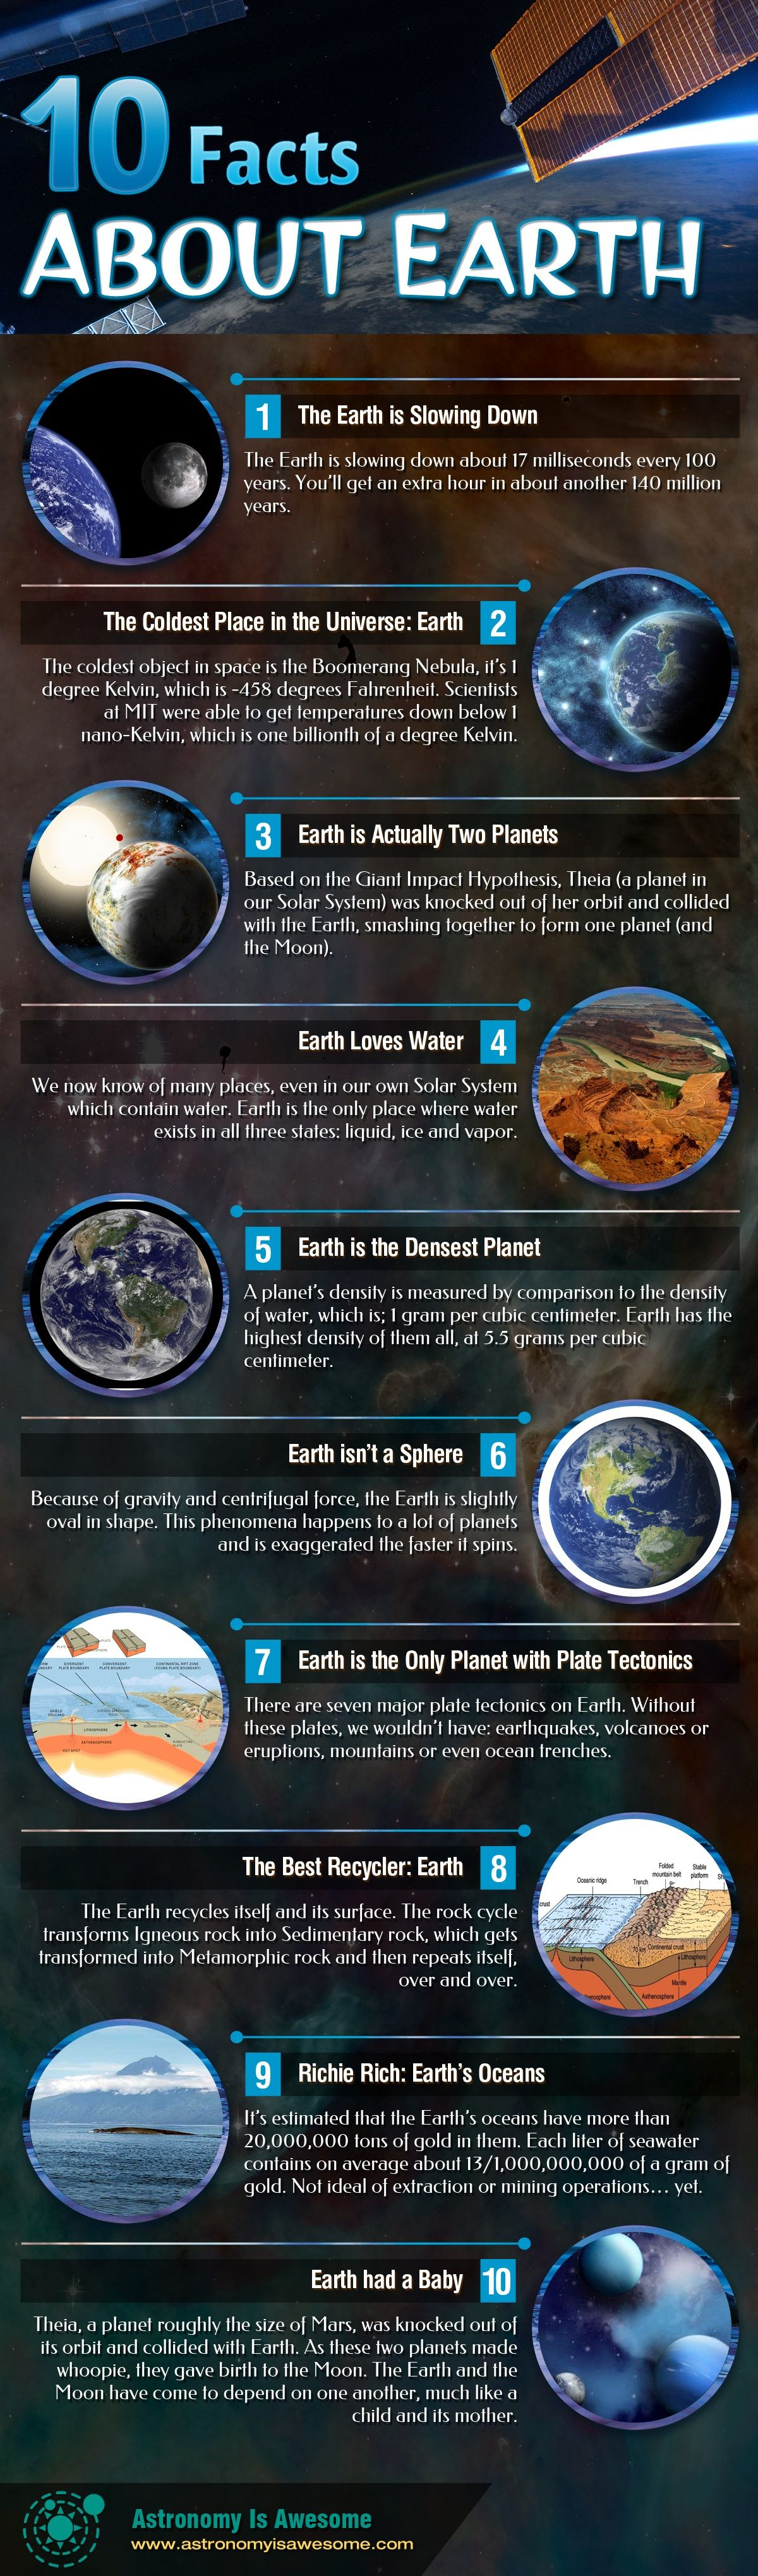 10 Facts About Earth